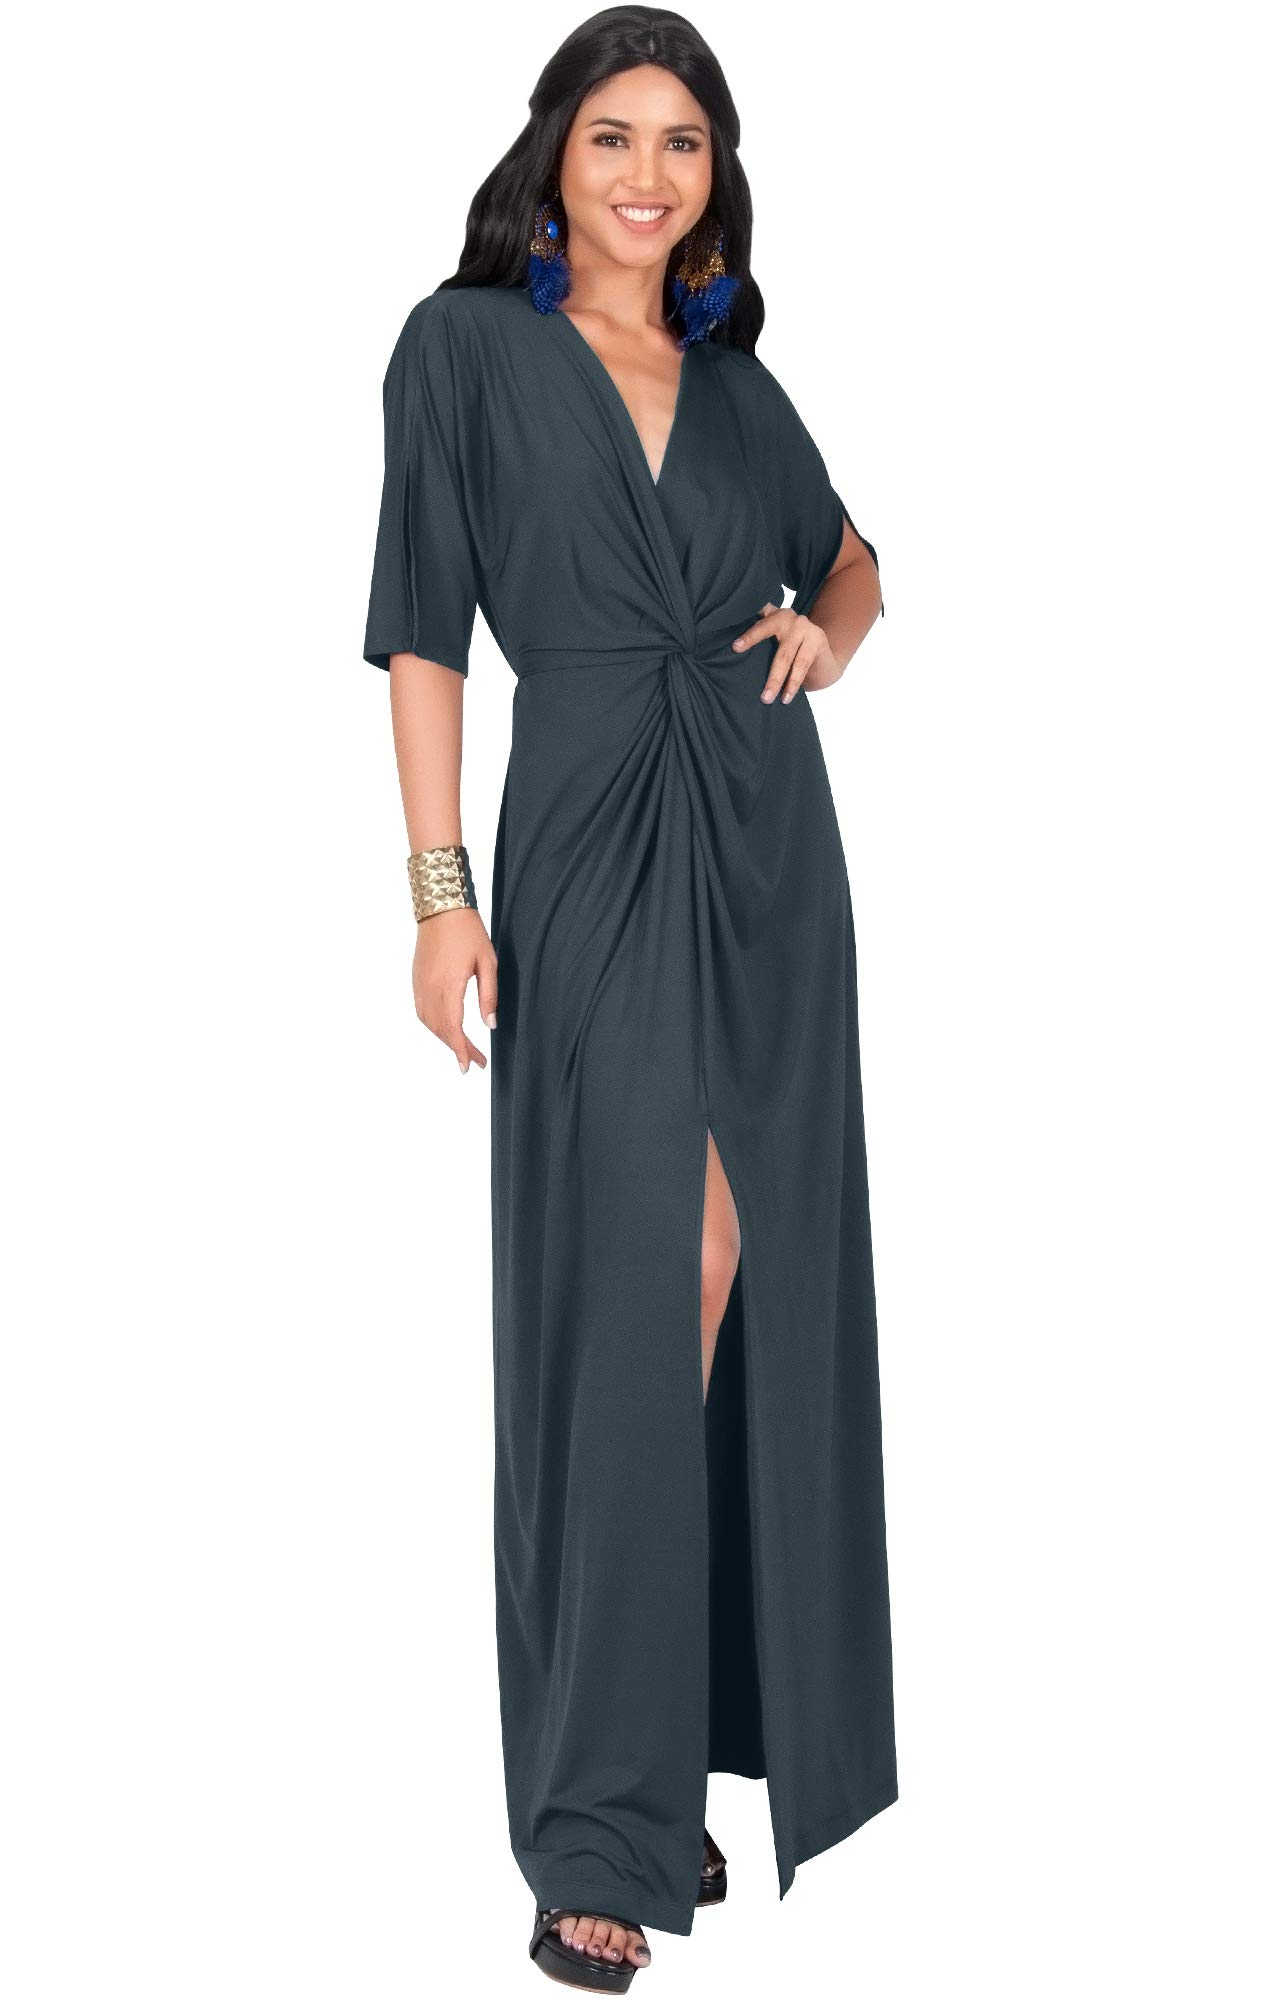 b538dea7ec KOH KOH Womens Long Sexy V-Neck Short Sleeve Cocktail Evening Bridesmaid  Wedding Party Slimming Casual Summer Maxi Dress Dresses Gown Gowns